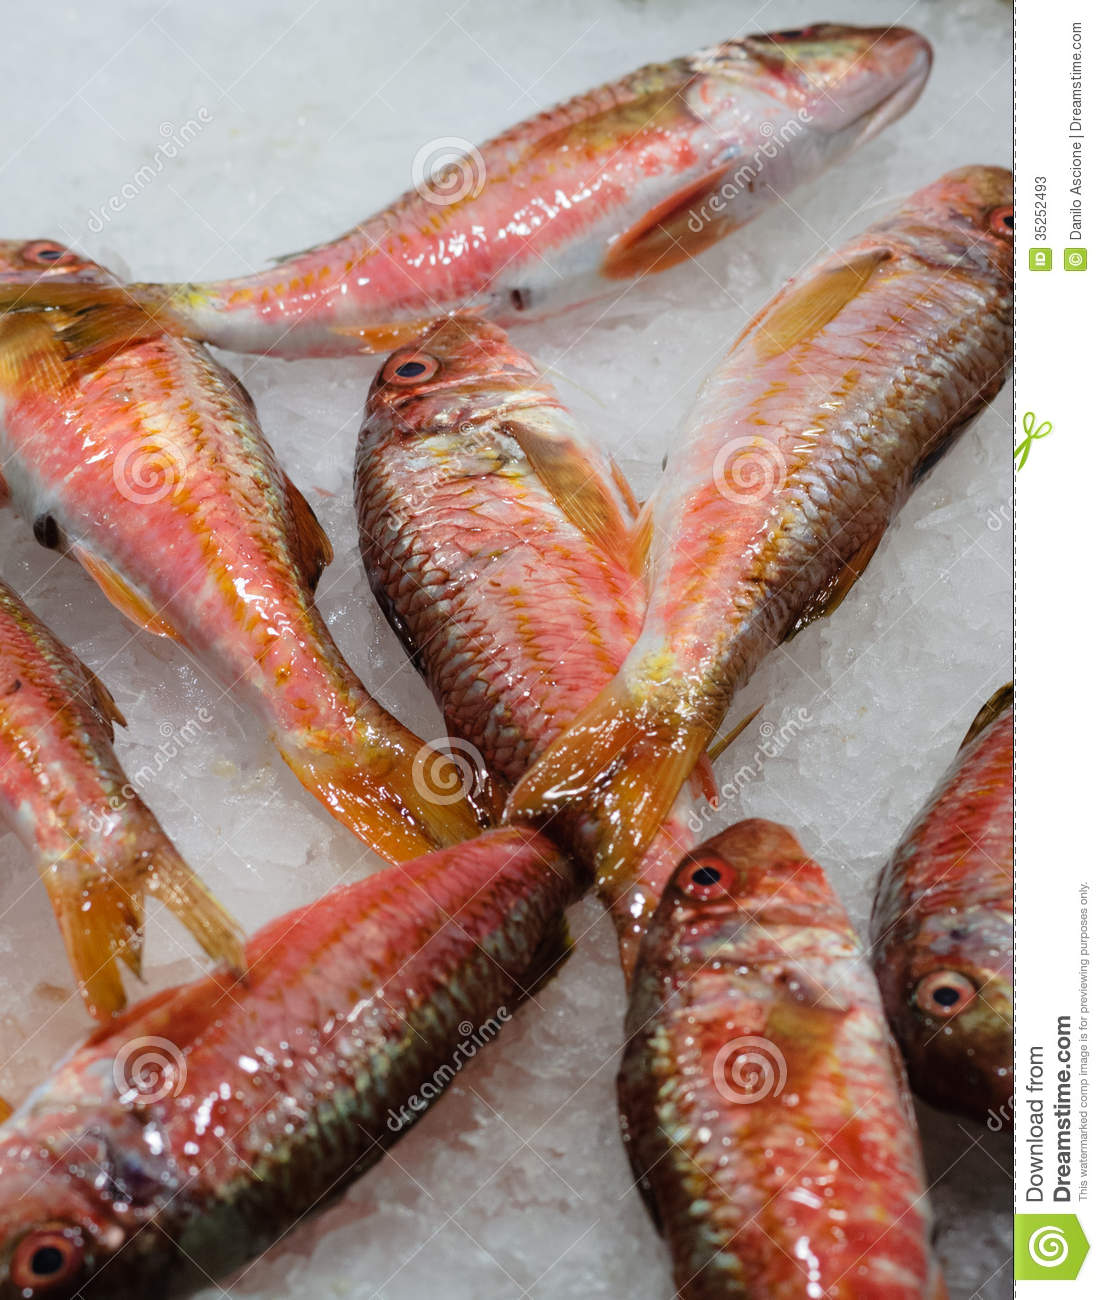 Red mullet stock photos image 35252493 for Local fish market